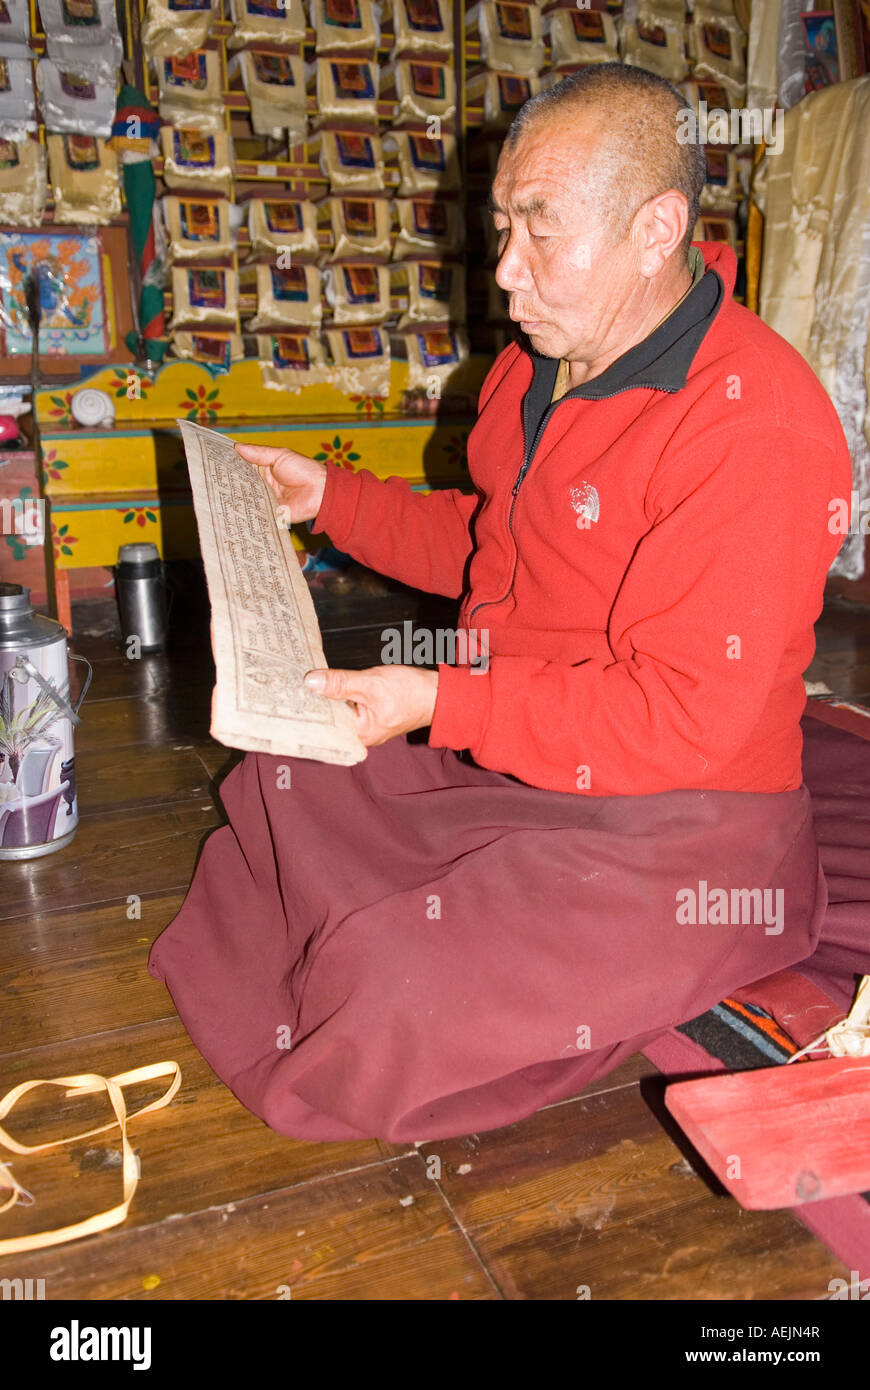 Buddhist monk reading a trditional book, Nepal Stock Photo